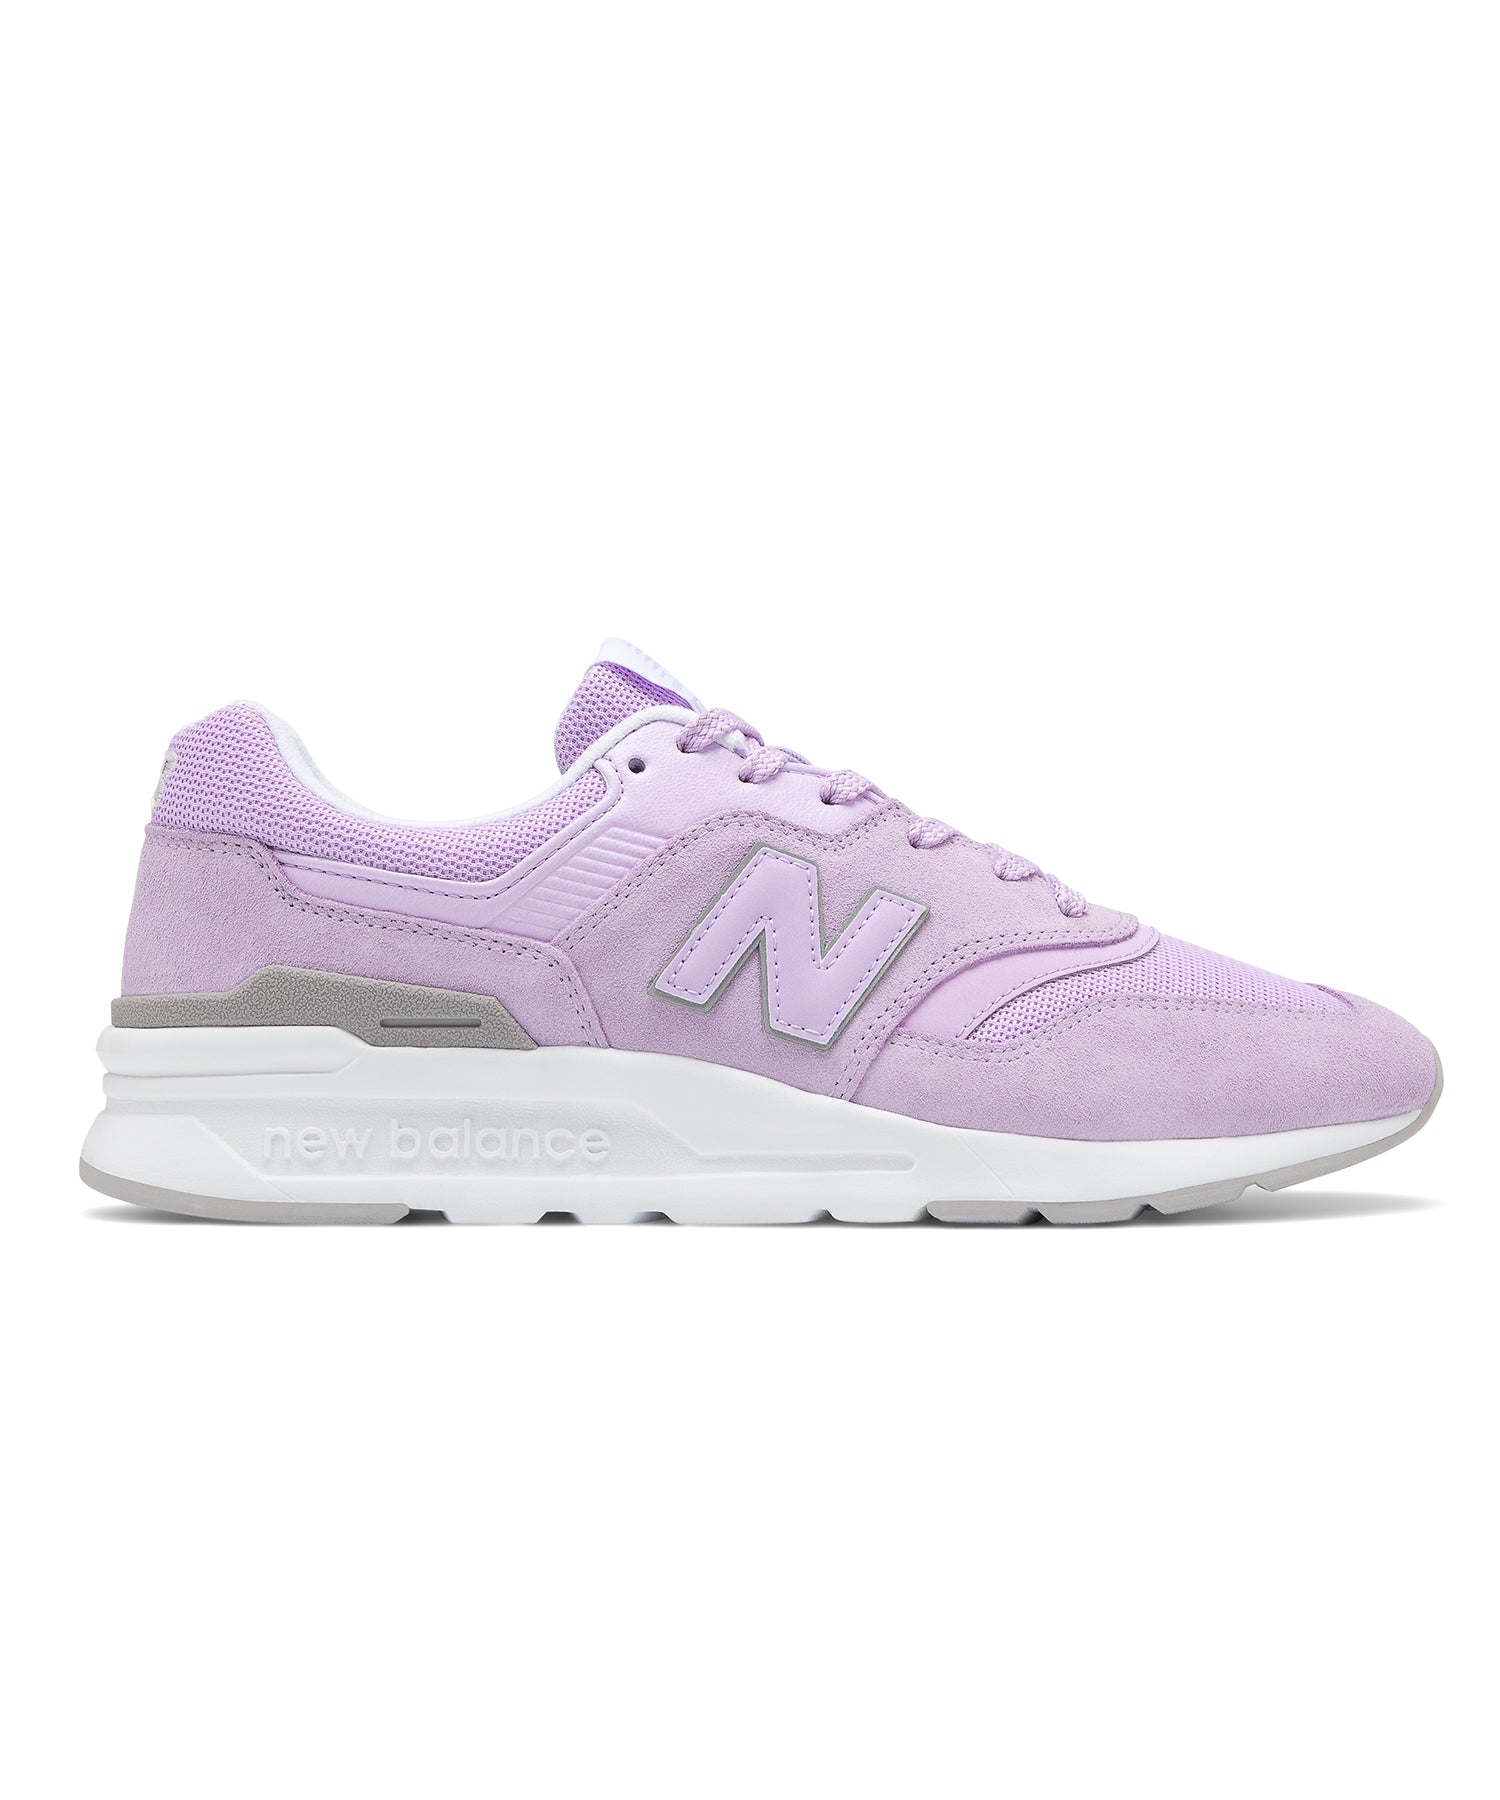 New Balance 997H Light Cyclone with White